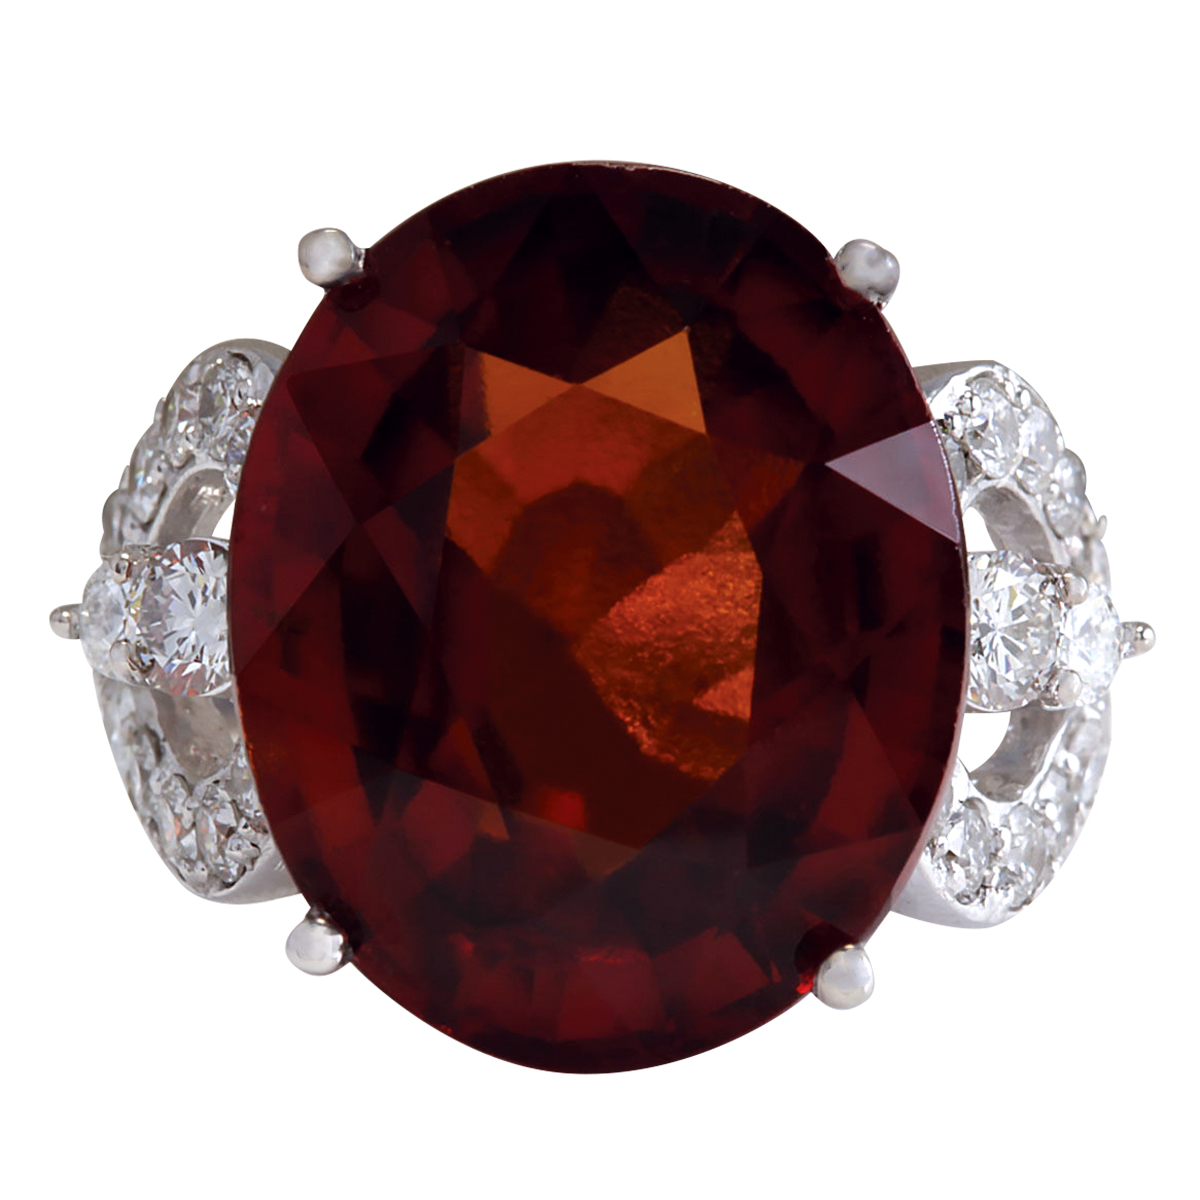 19.81Ct Natural Red Hessonite Garnet And Diamond Ring In14K White Gold by